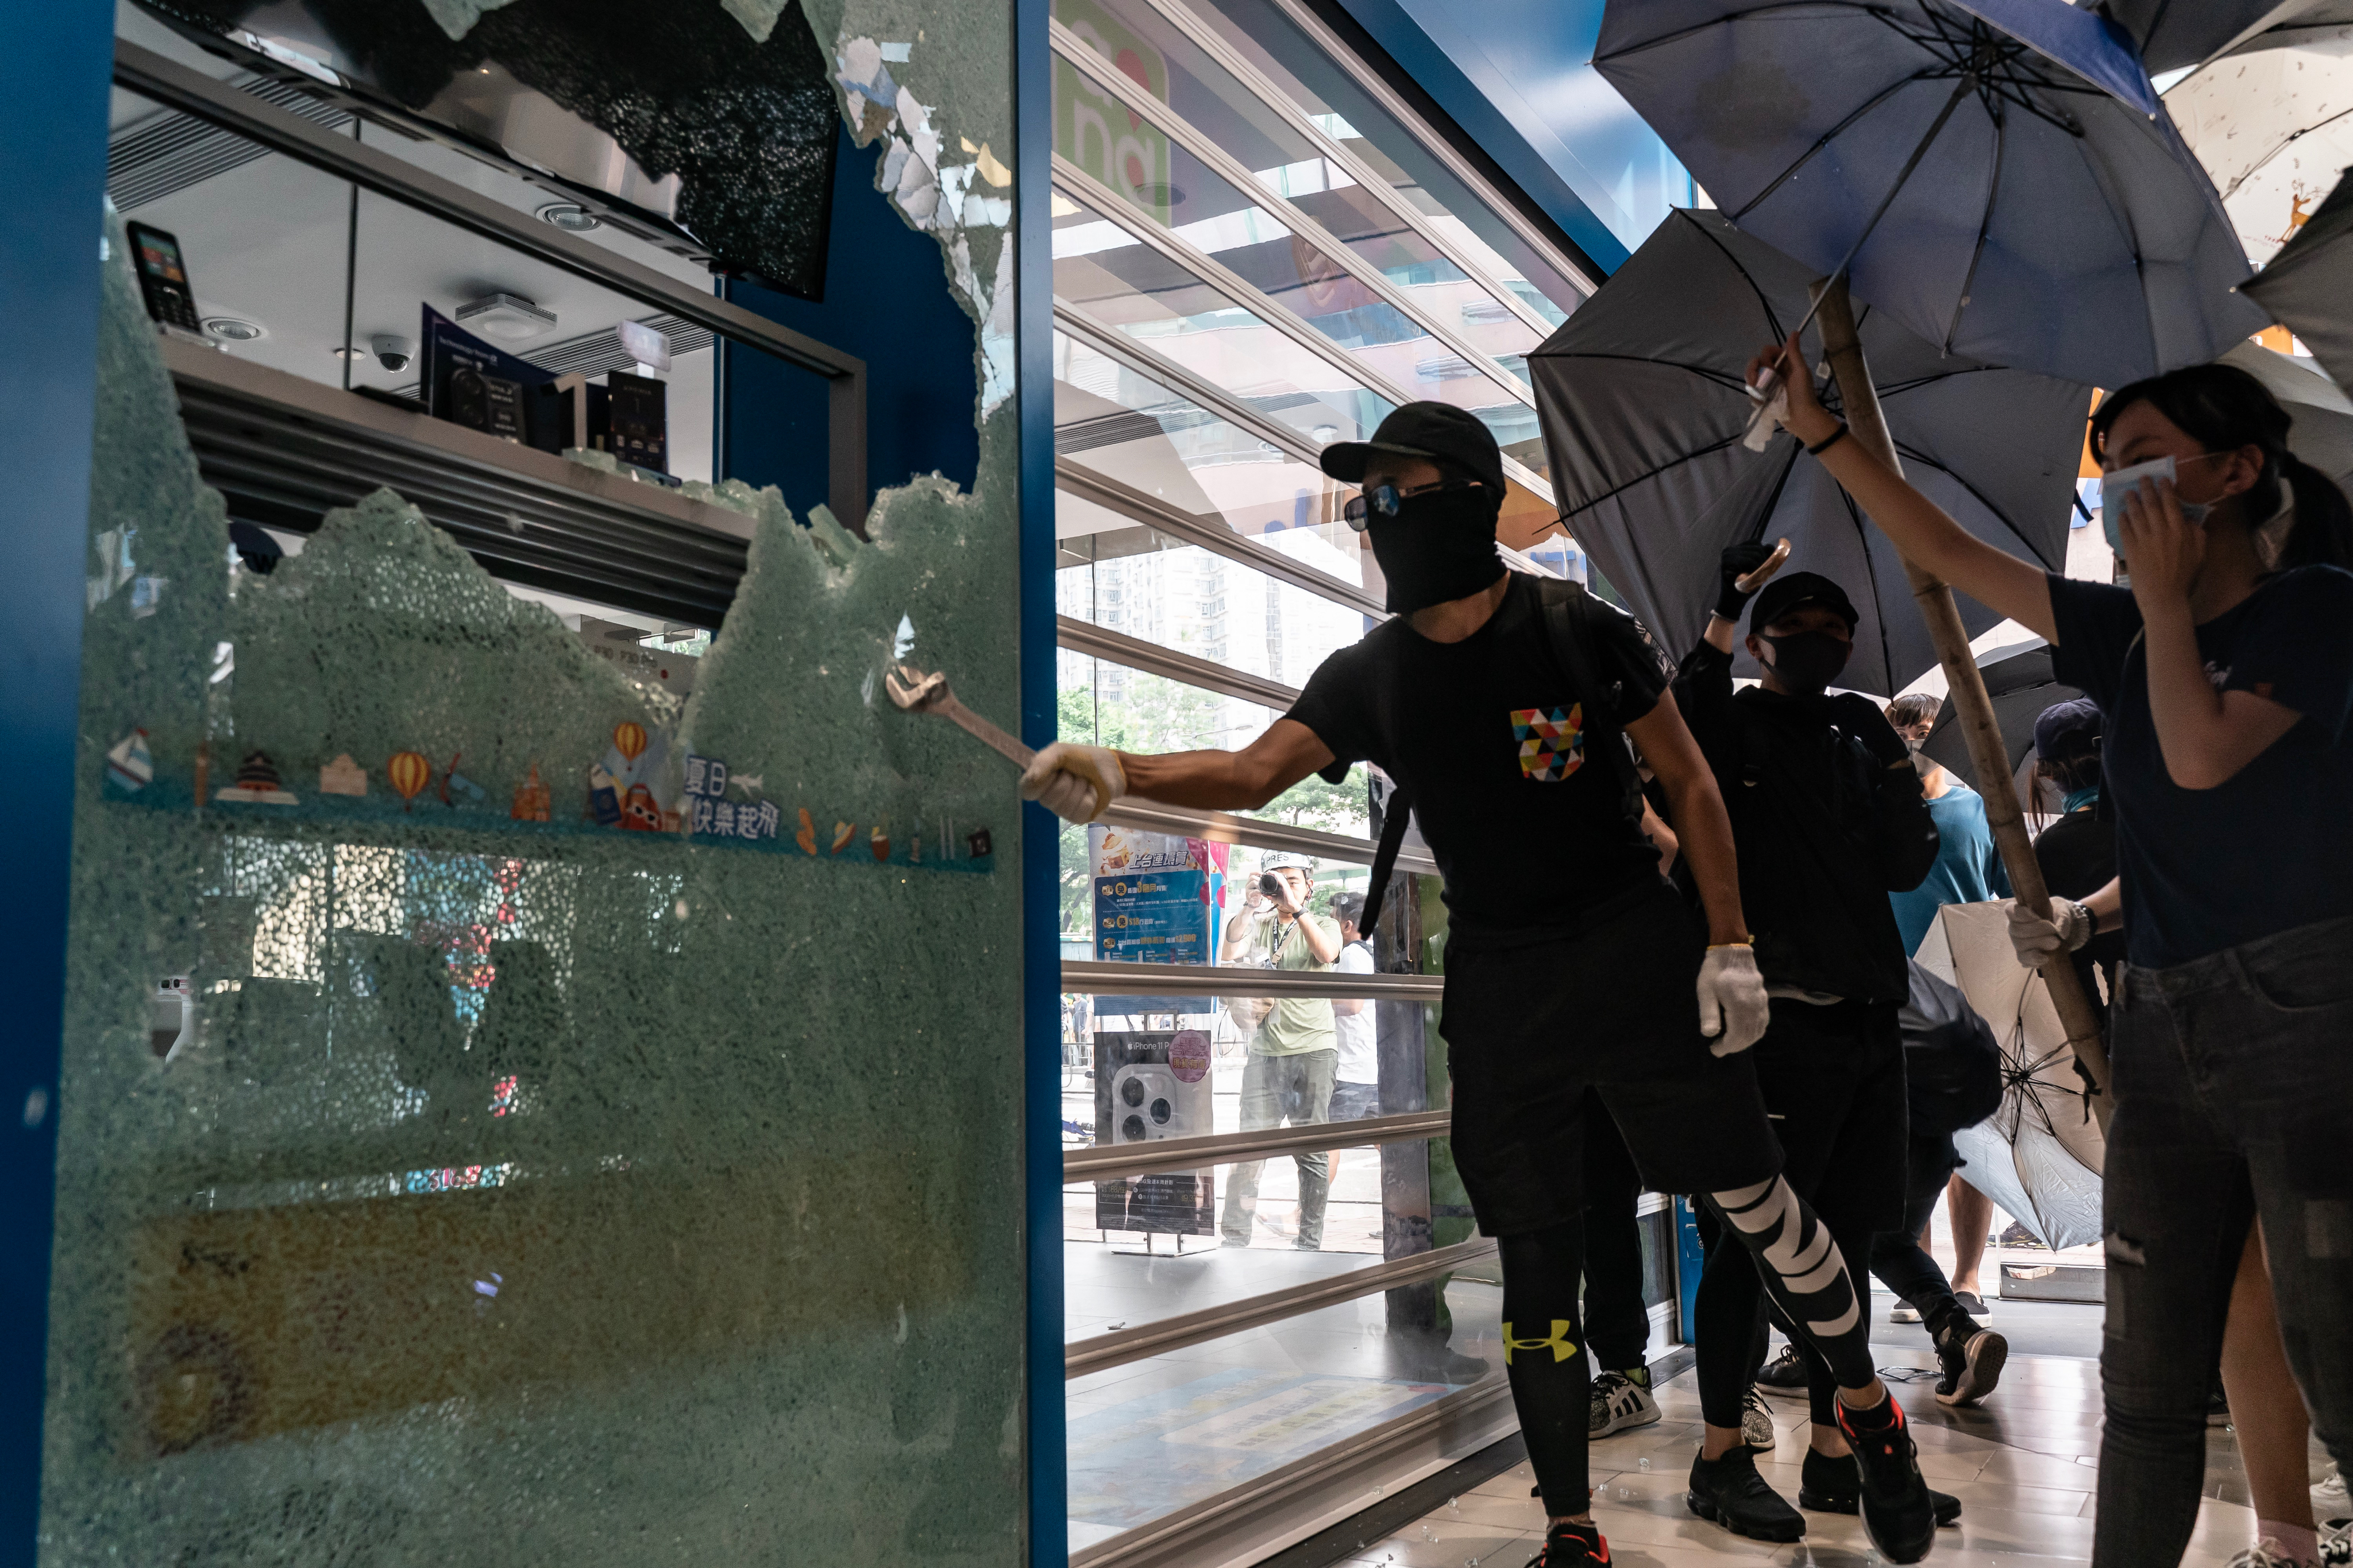 Pro-democracy protesters vandalize a China Mobile Ltd. store at Sheung Shui district on October 5, 2019 in Hong Kong, China.